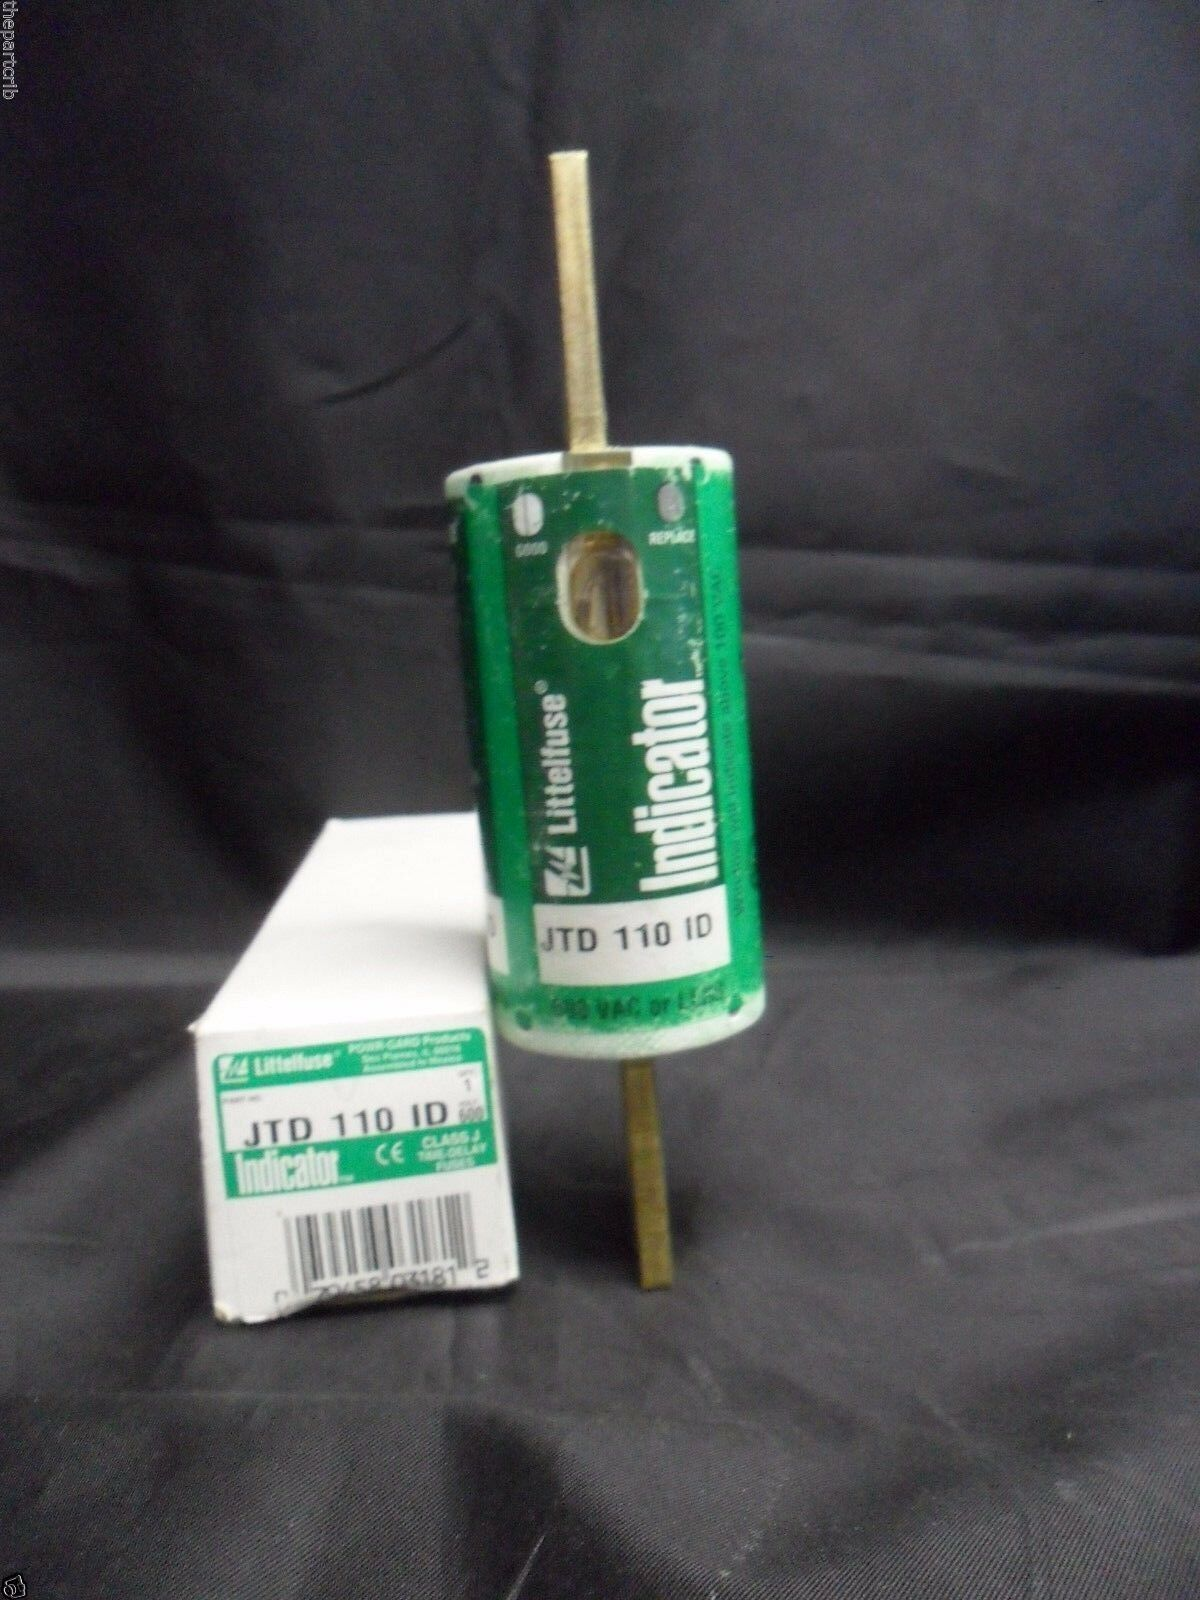 Littelfuse Jtd110id Time Delay Fuse With Indicator Class J 600v 110a Surfacemount Timedelay Picture 1 Of 3